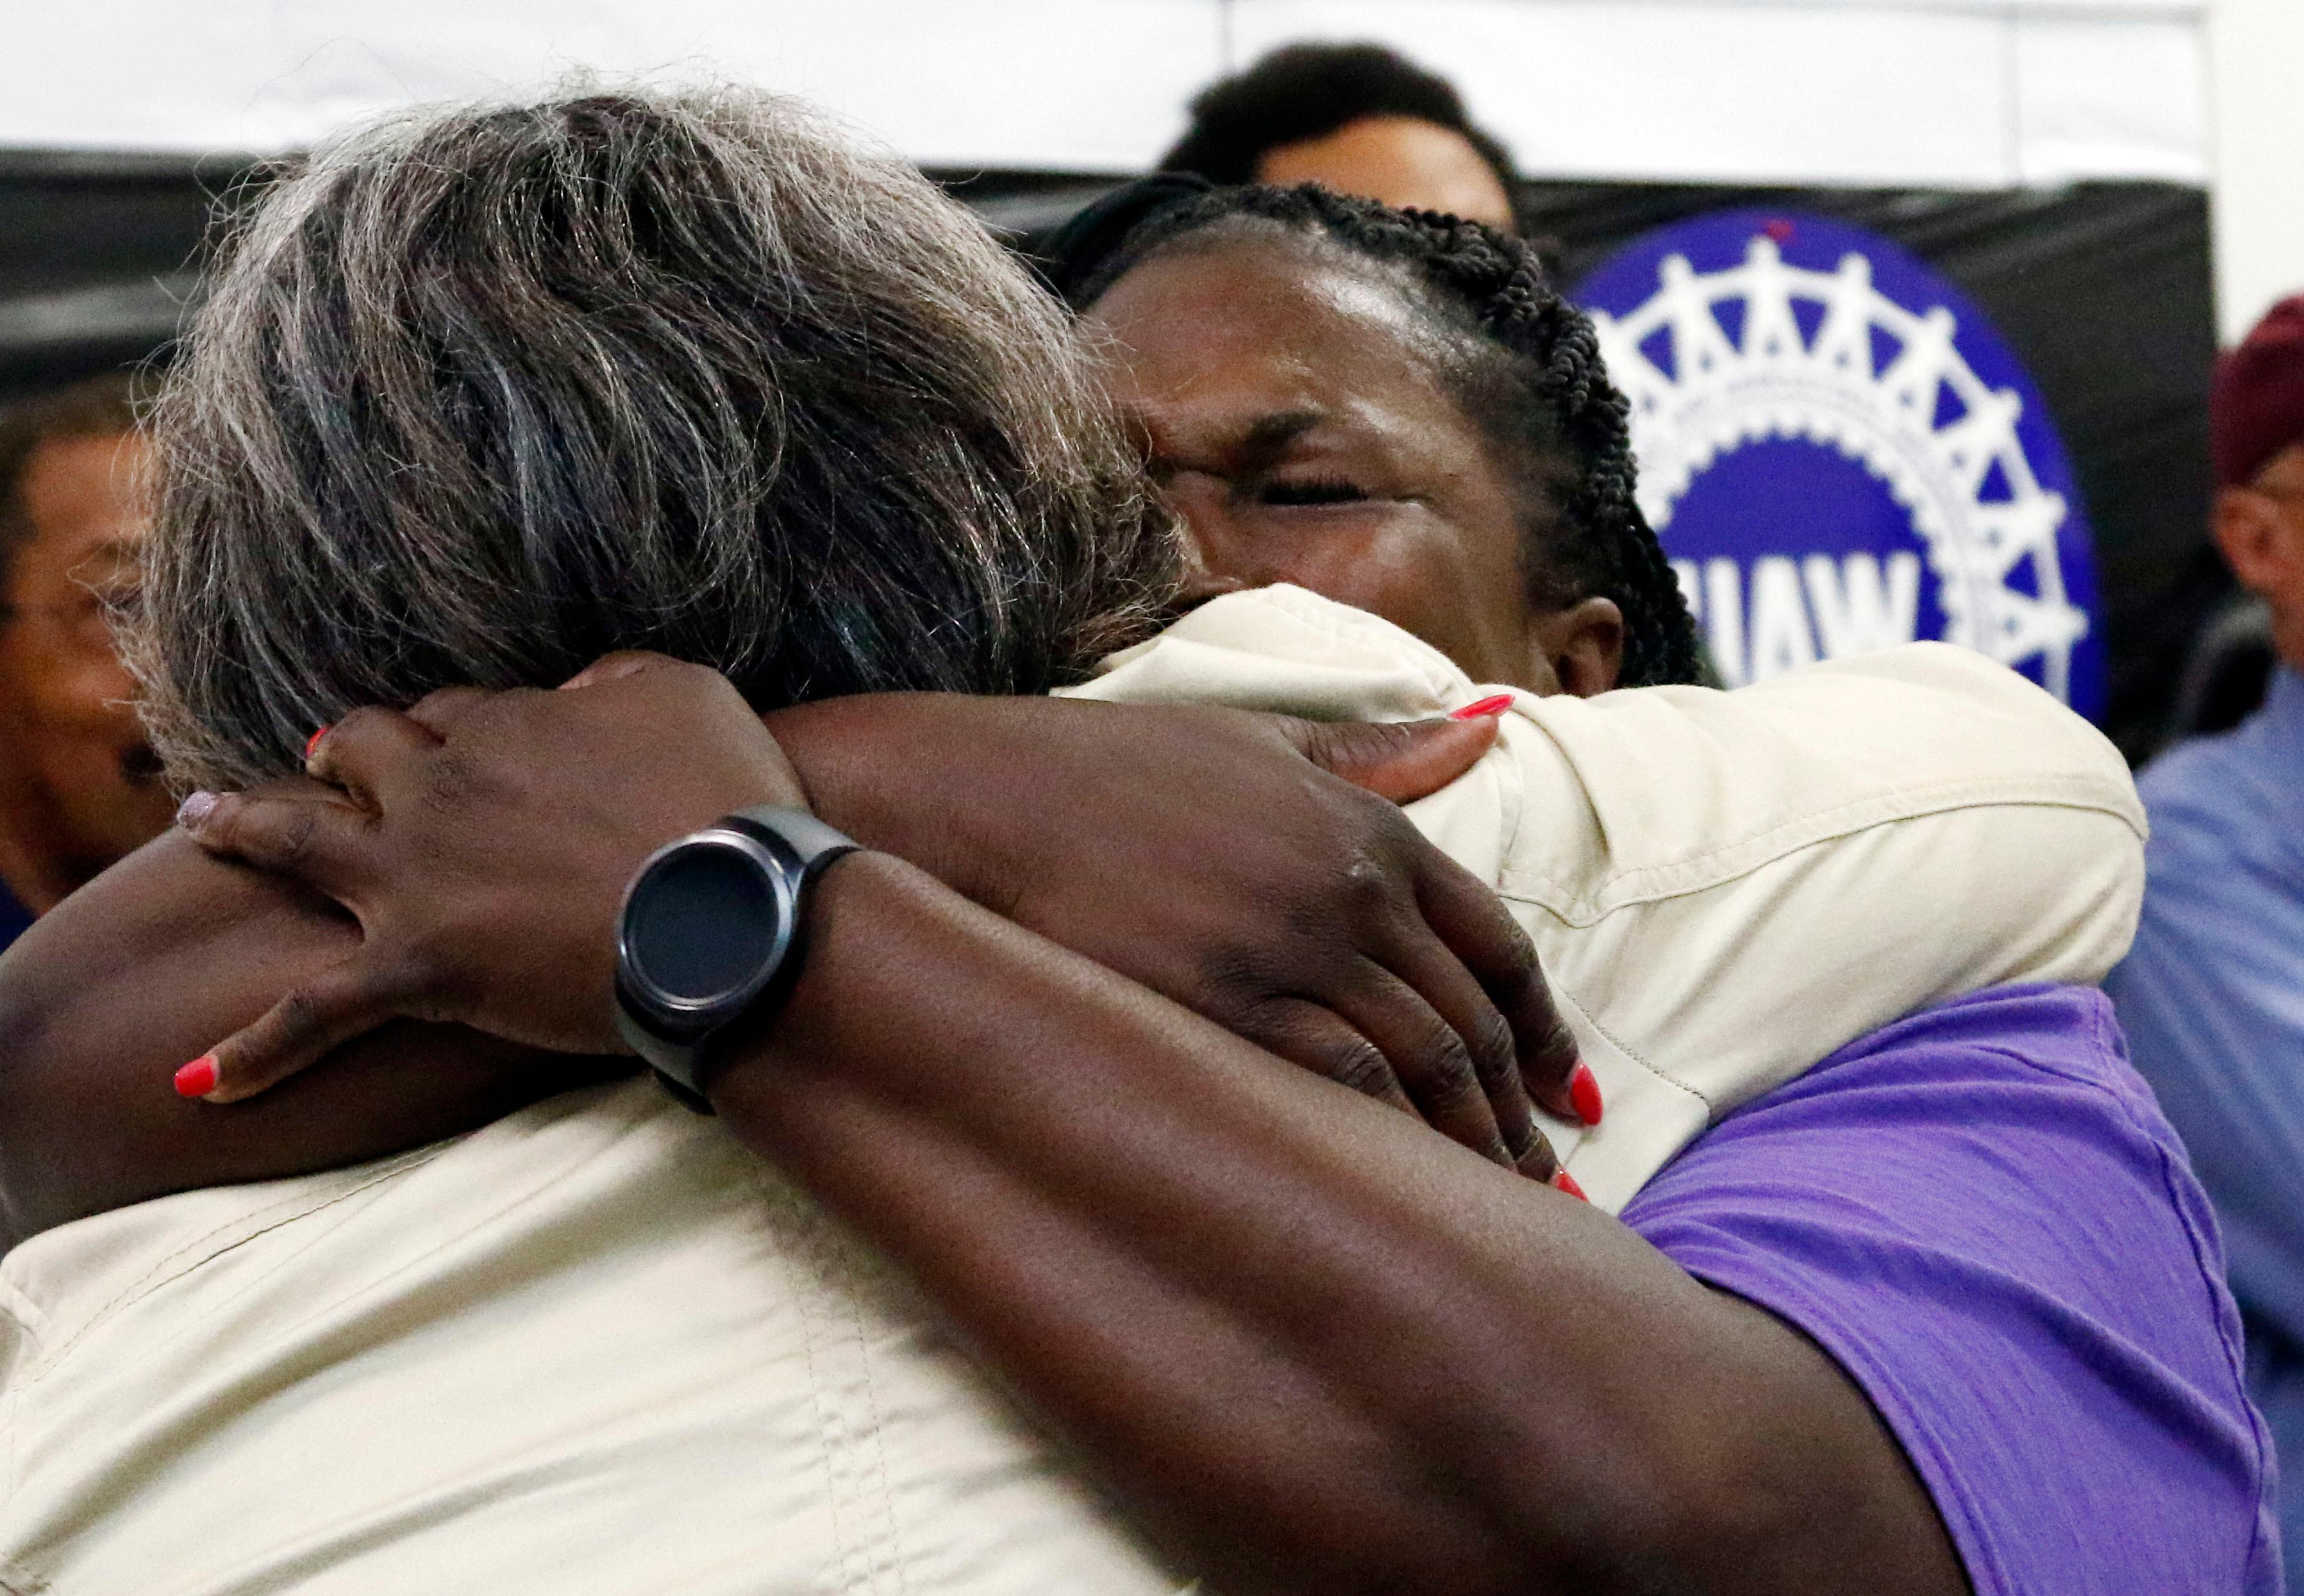 United Auto Workers members, some Nissan employees and supporters console one another as they express their disappointment at losing their bid to form a union at the Nissan vehicle assembly plant in Canton, Miss., Friday, Aug. 4, 2017.  (AP Photo/Rogelio V. Solis)